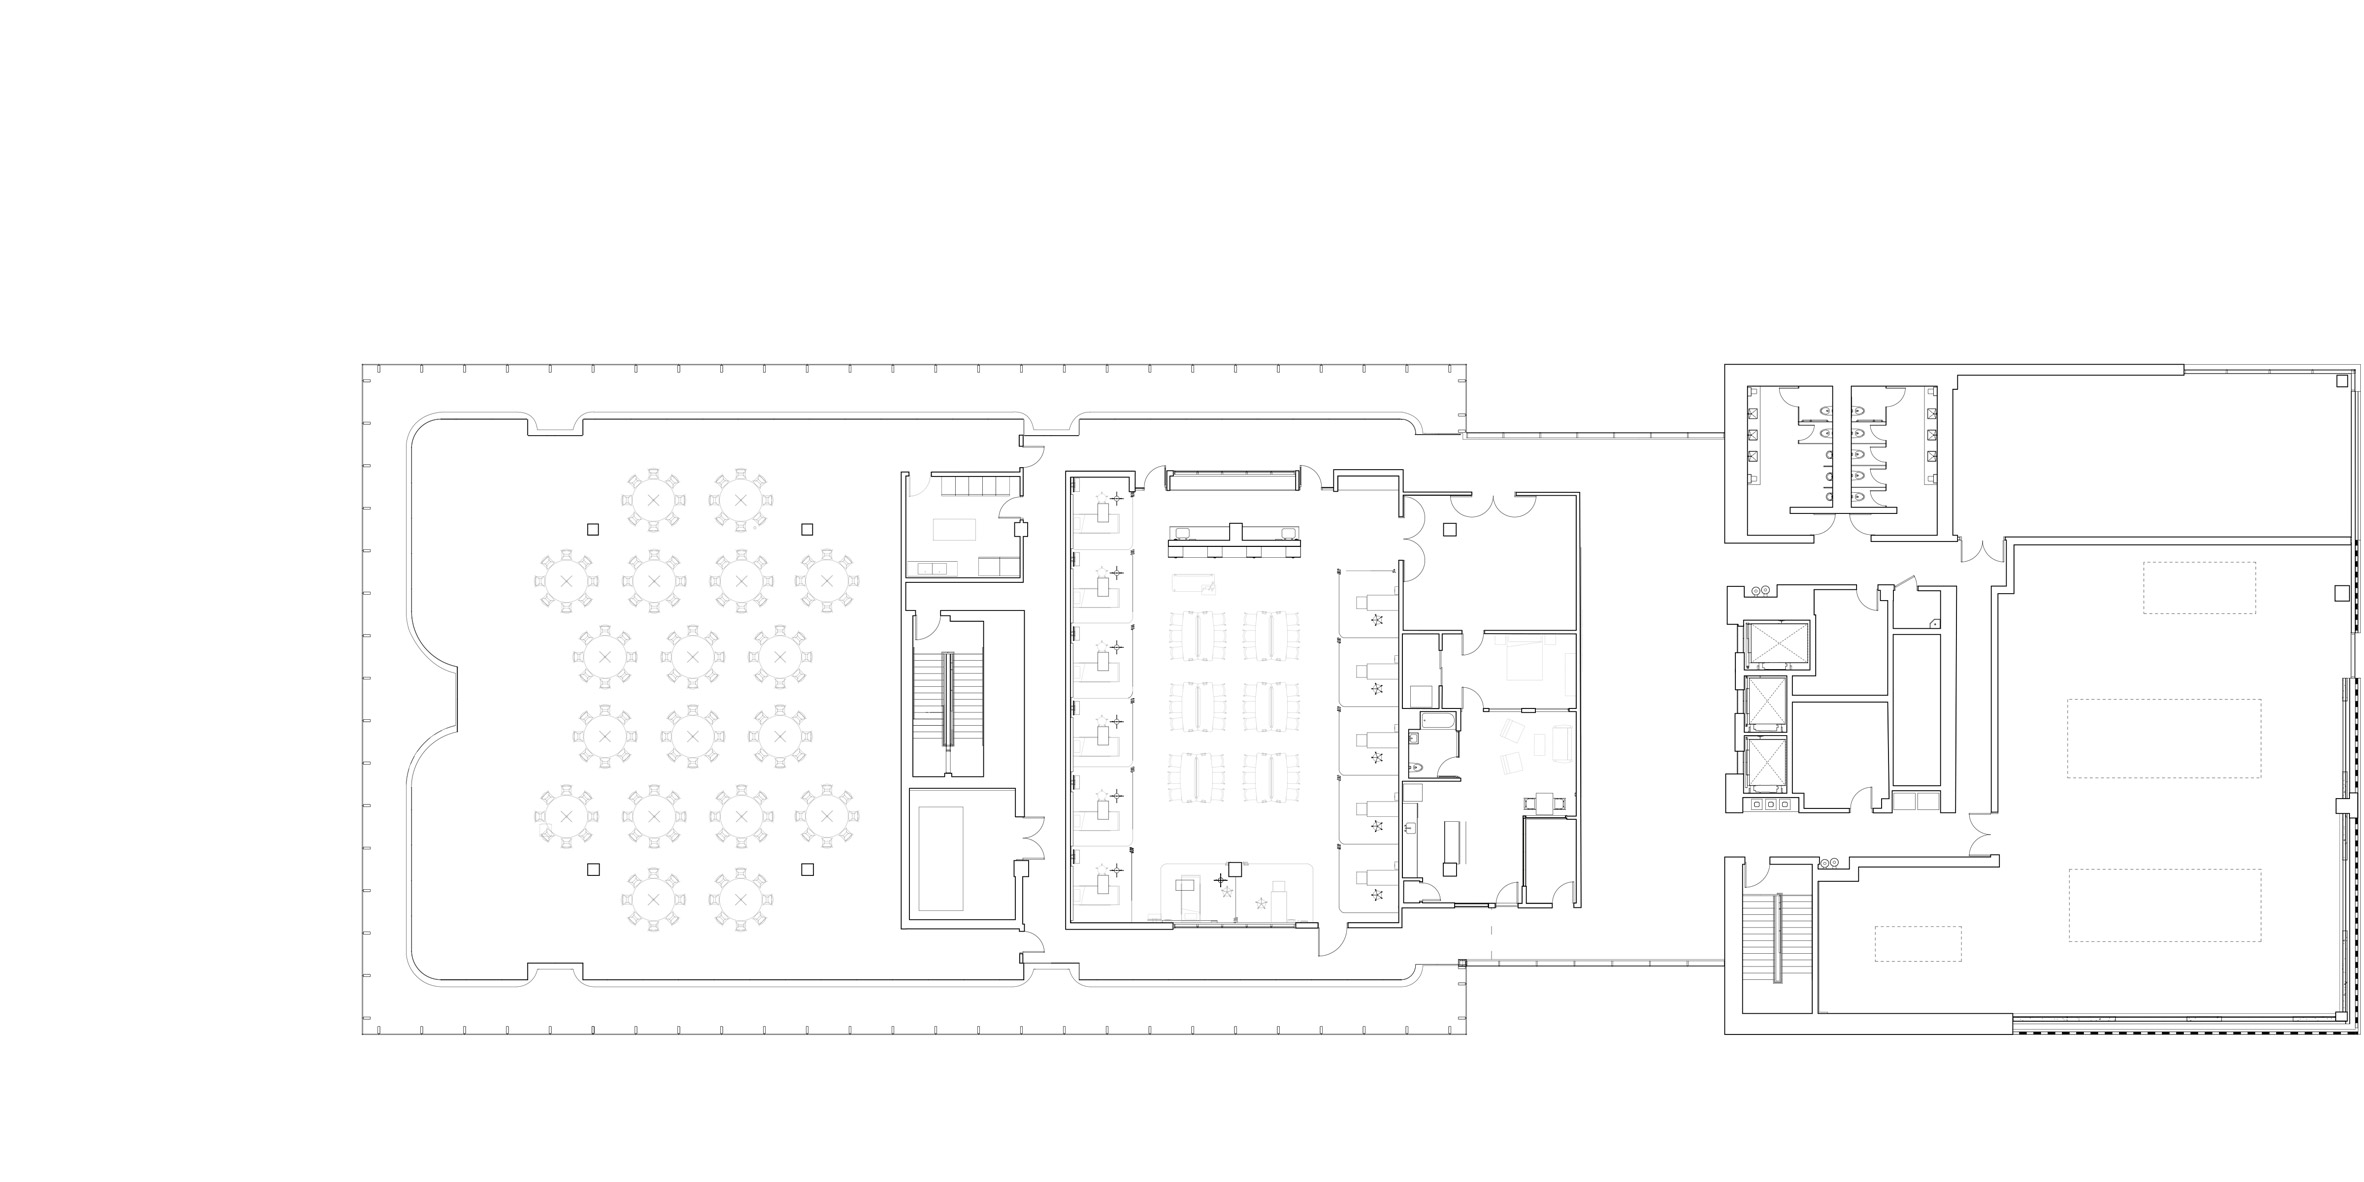 medical-center-university-of-kansas-co-architects-architecture-kansas-city-usa_dezeen_2364_fifth-level-floor-plan.jpg